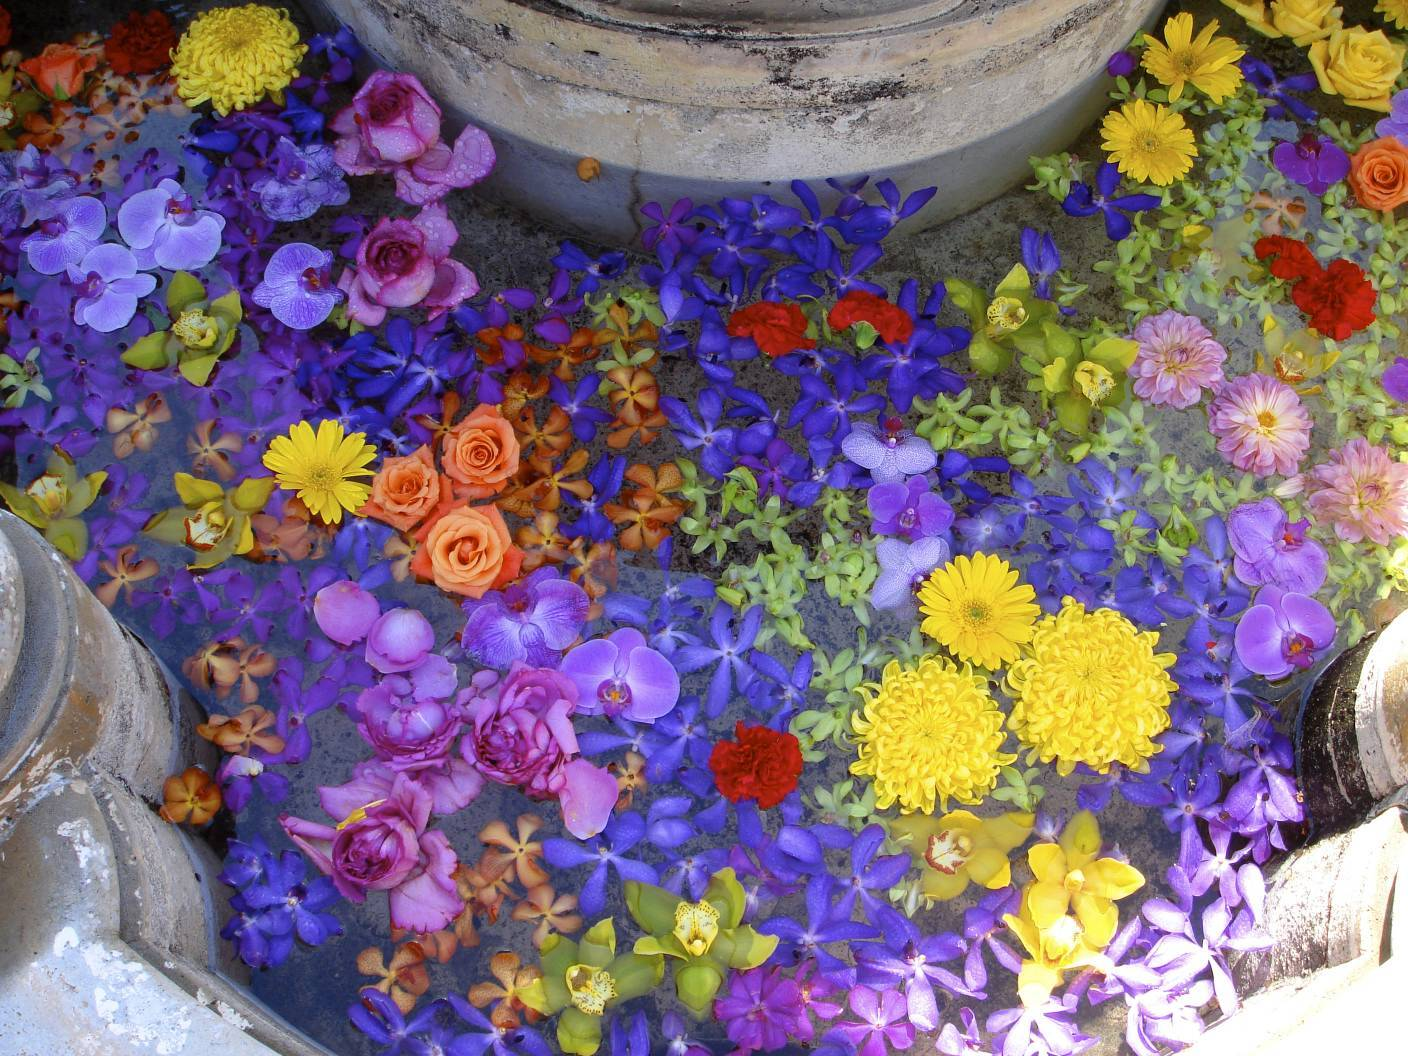 Flowers & Decor, yellow, purple, Flowers, Fountain, Colors, Bright